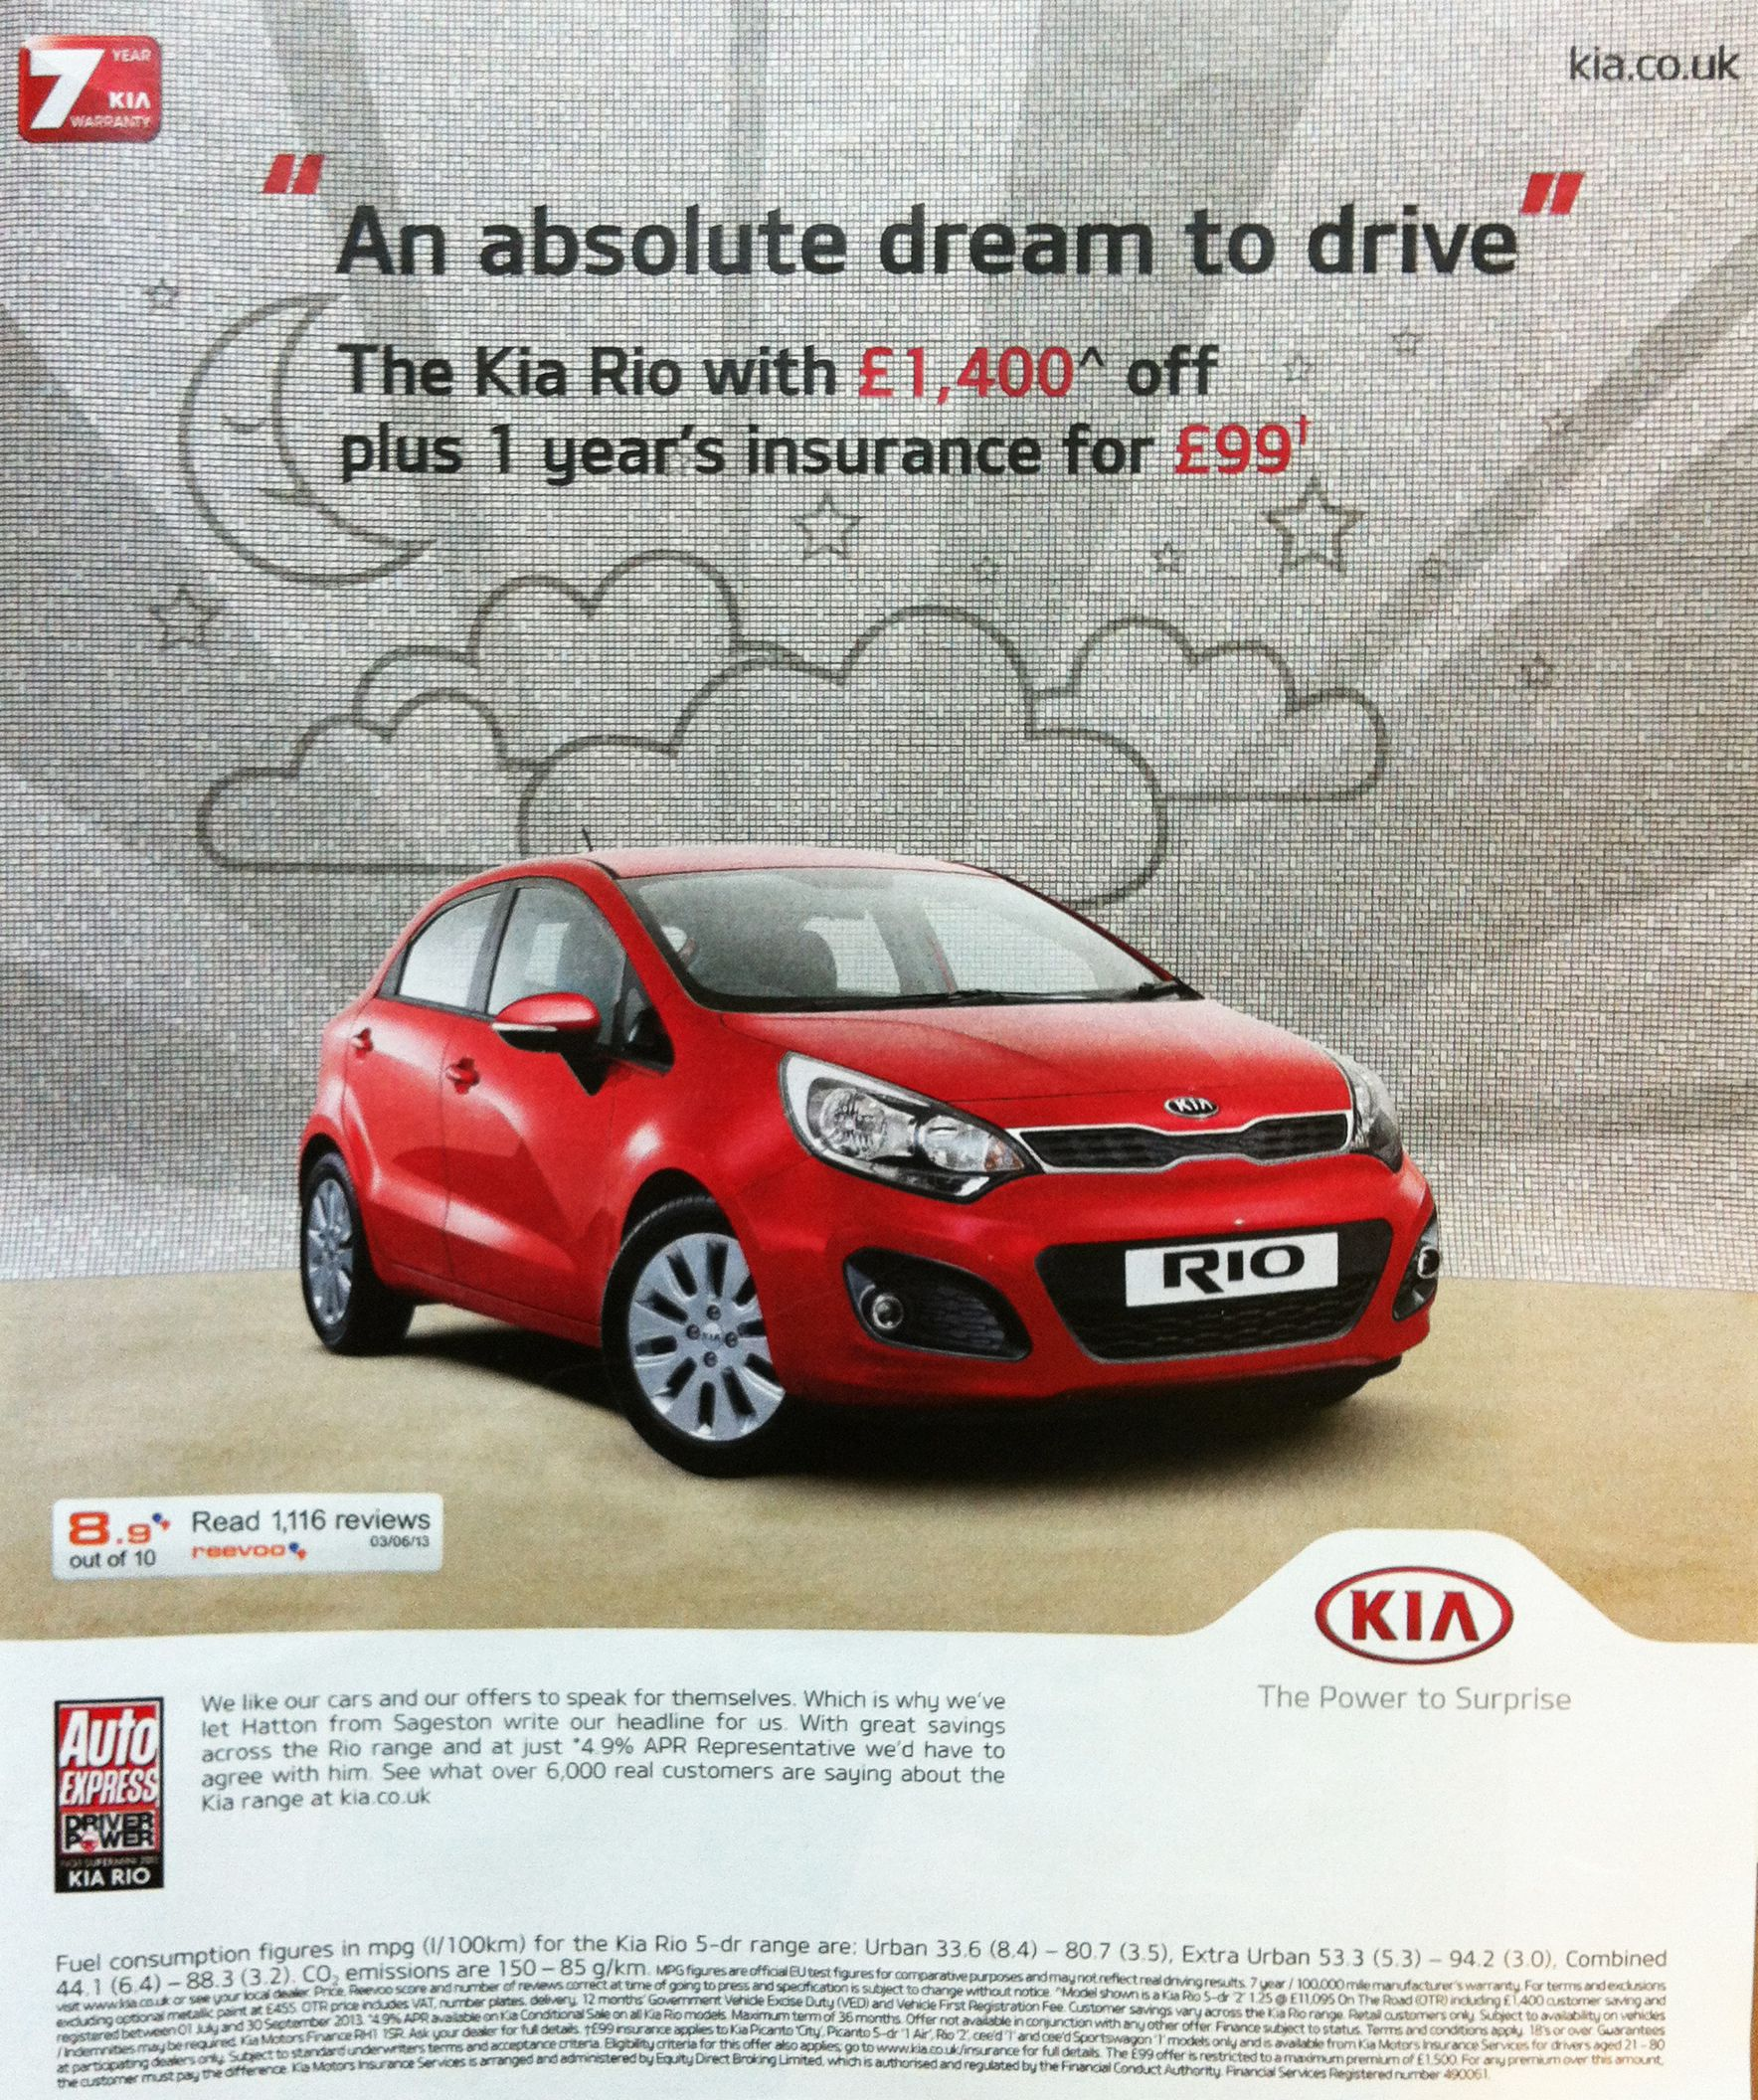 Reevoo ratings on a #Kia ad published in The Guardian ...